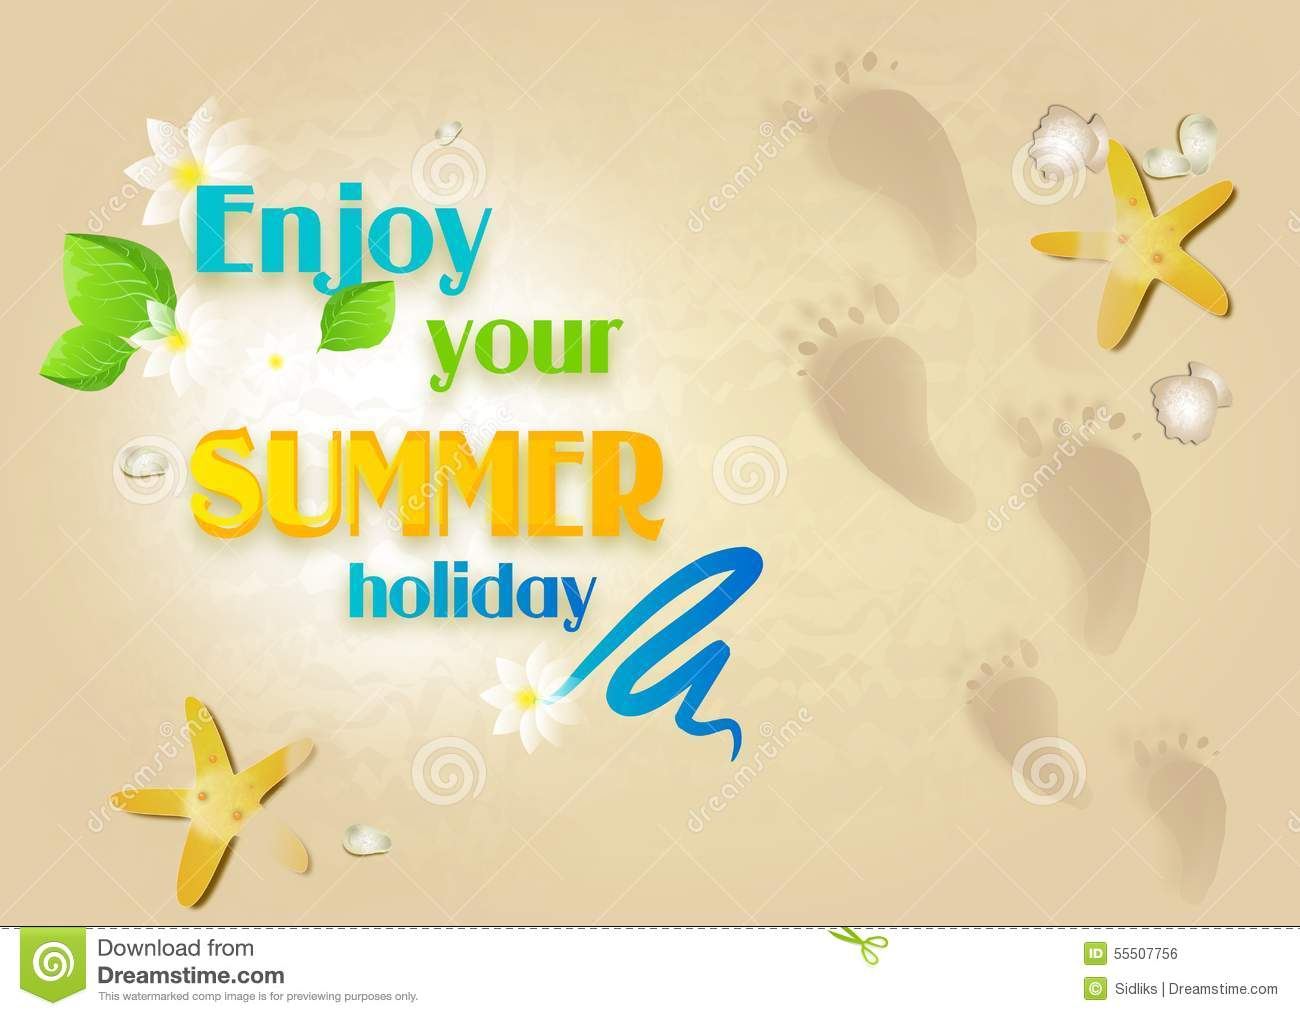 Enjoy Tropical Summer Holidays Backgrounds Vector 04 Free: Enjoy Your Summer Holiday Stock Illustration